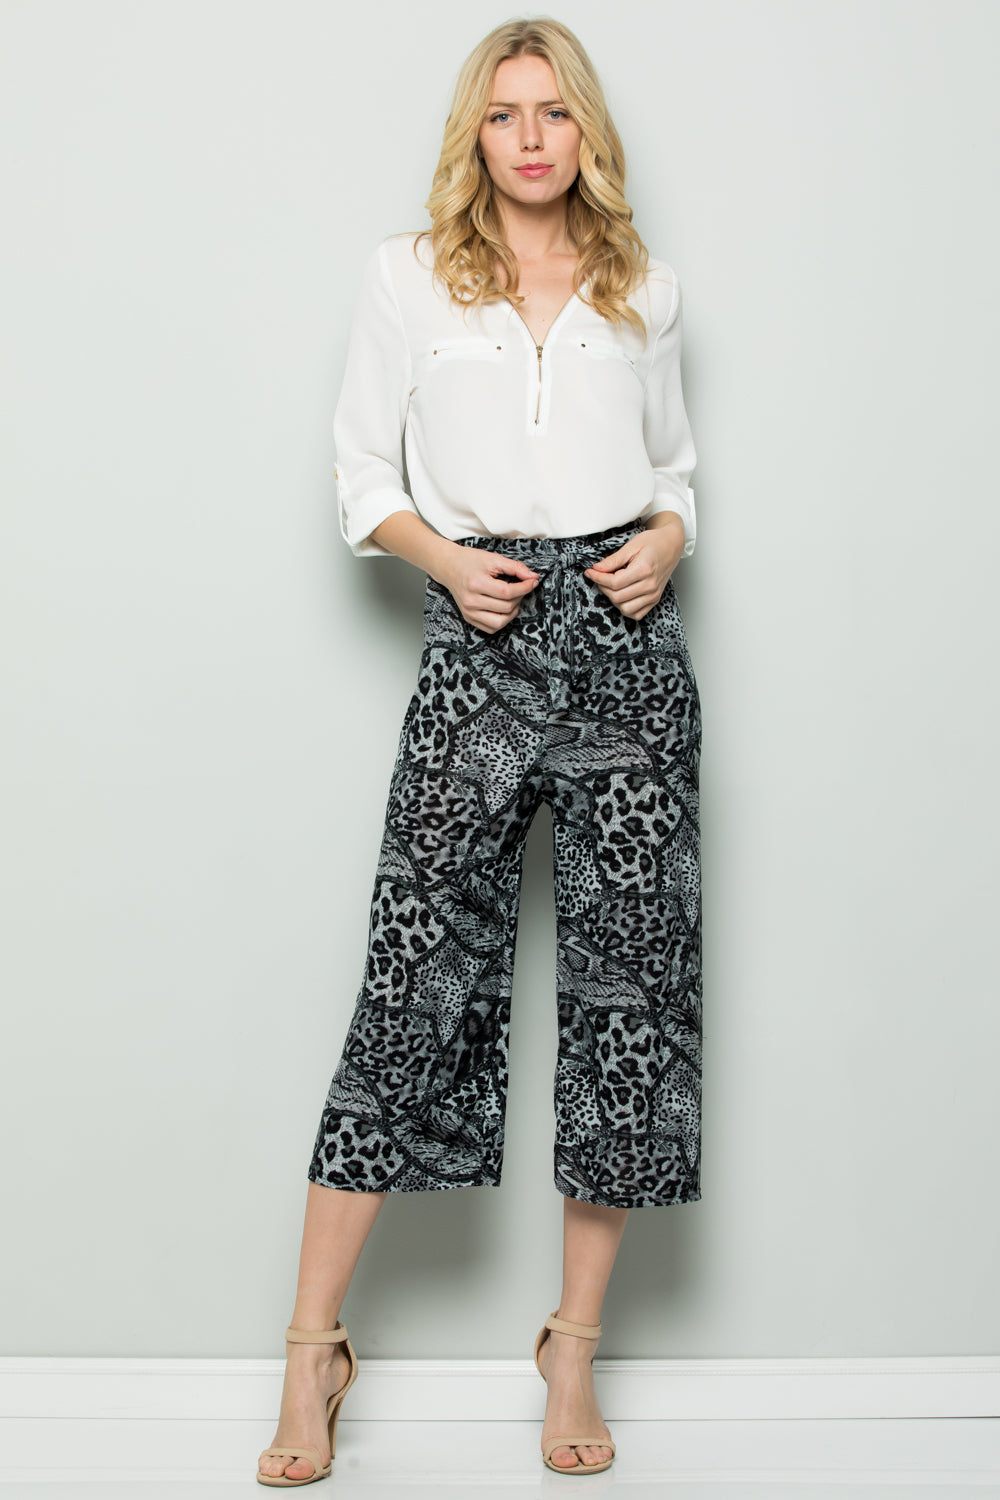 GREY WILD PRINT HIGH WAIST CULOTTES